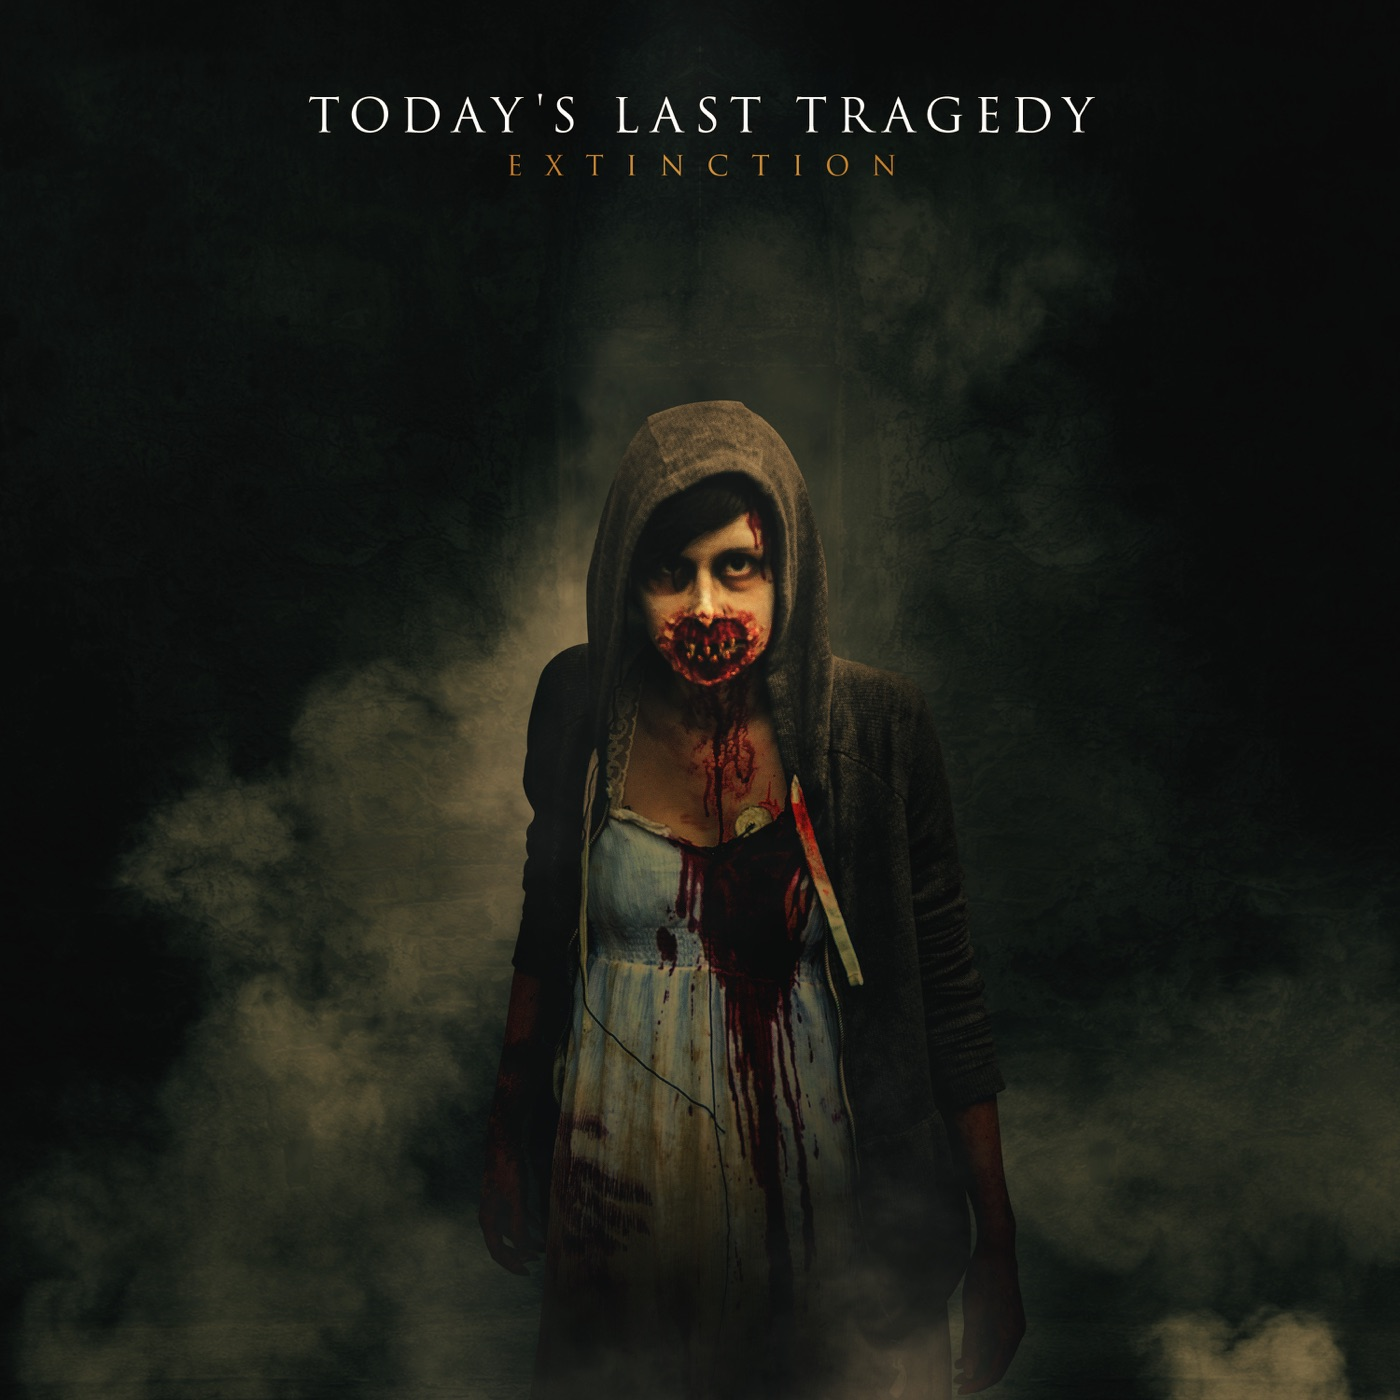 Today's Last Tragedy - Extinction [single] (2019)